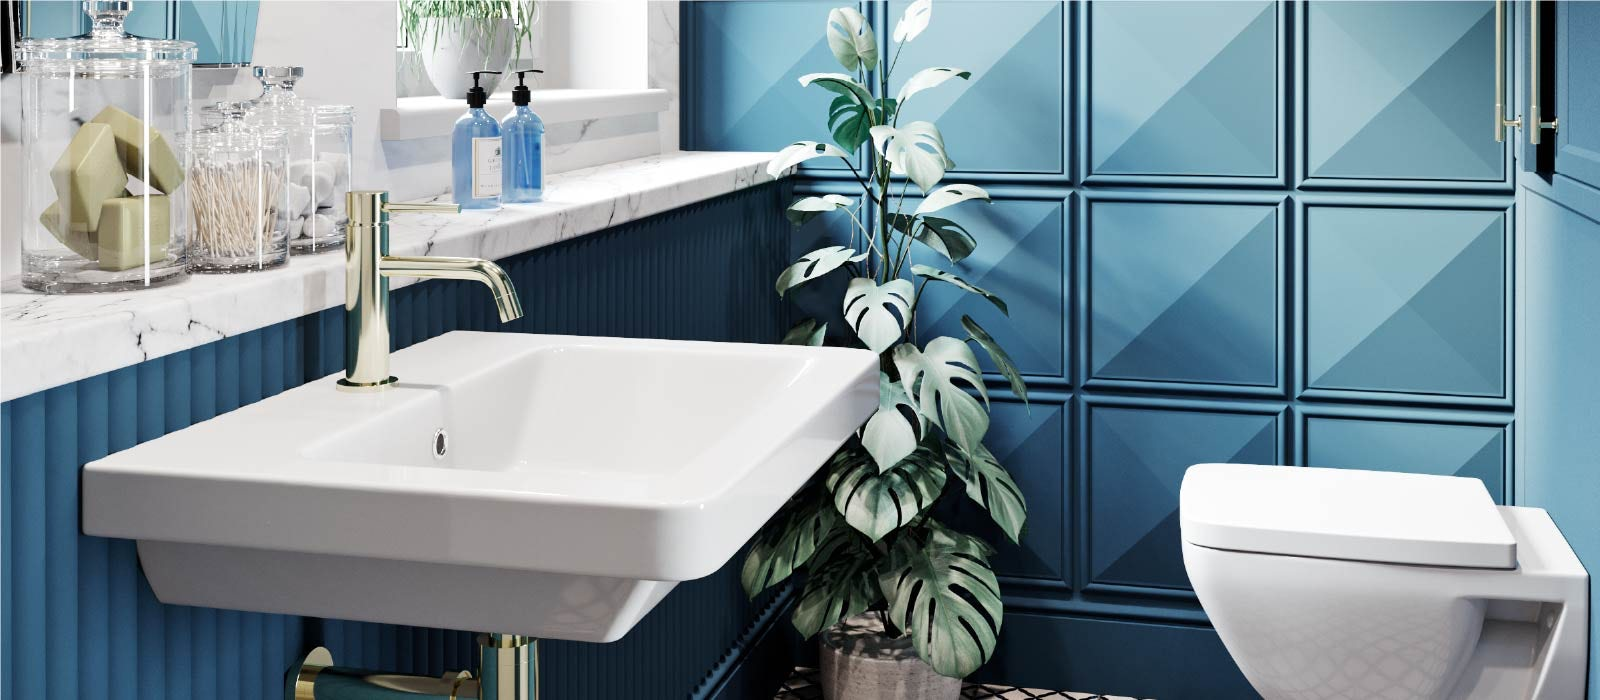 21 Big Bathroom Trends For 2021 Victoriaplum Com